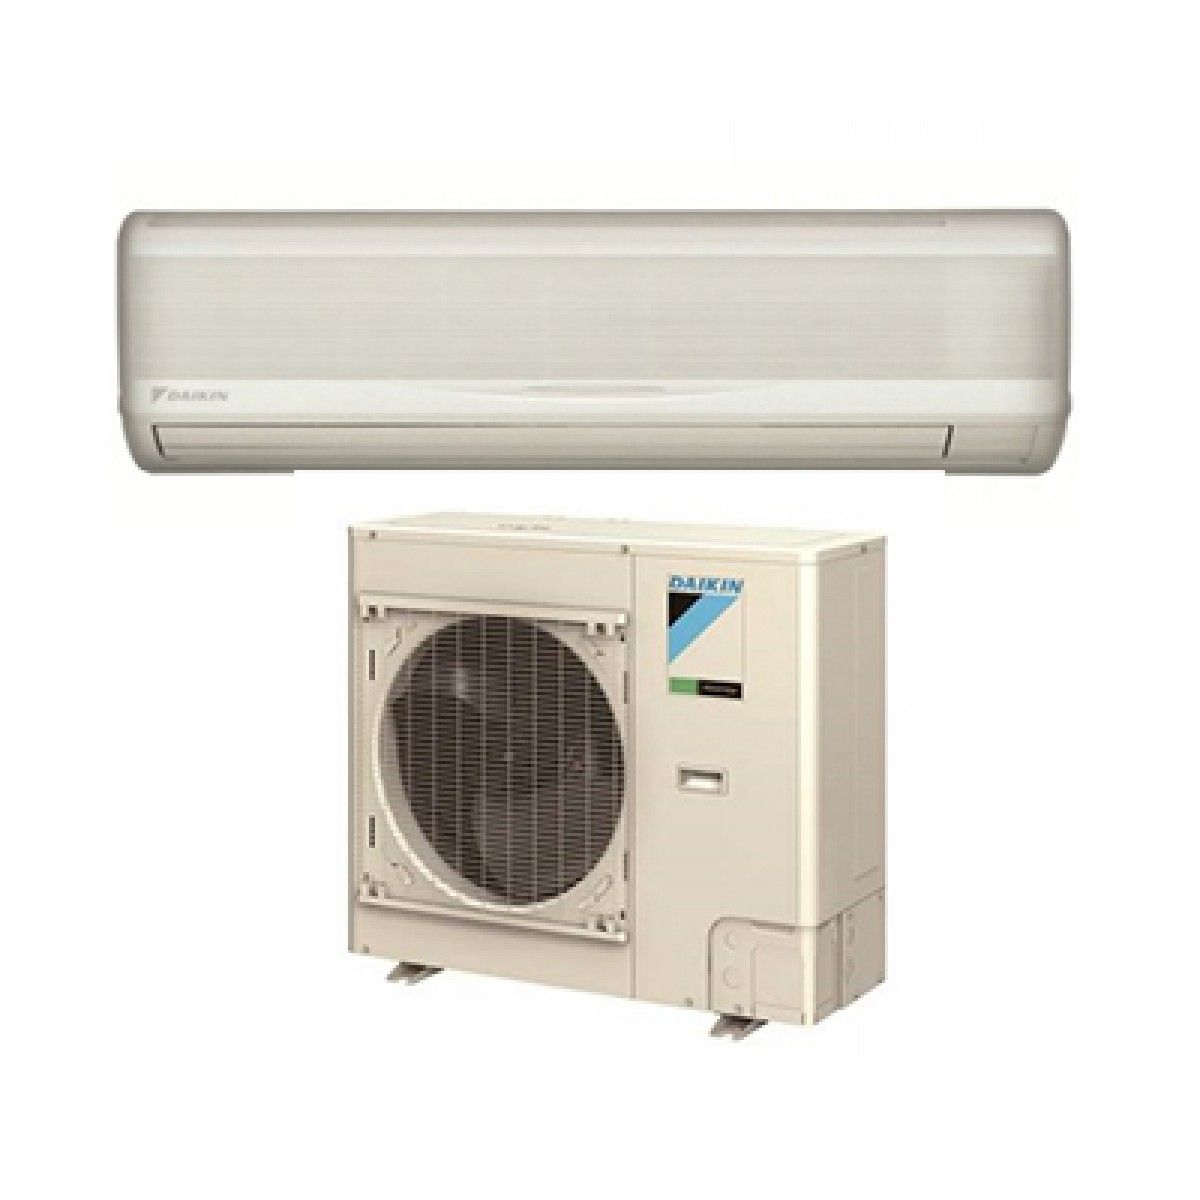 Daikin skyair 18k btu 18 6 seer heat pump system with wall for Ductless ac